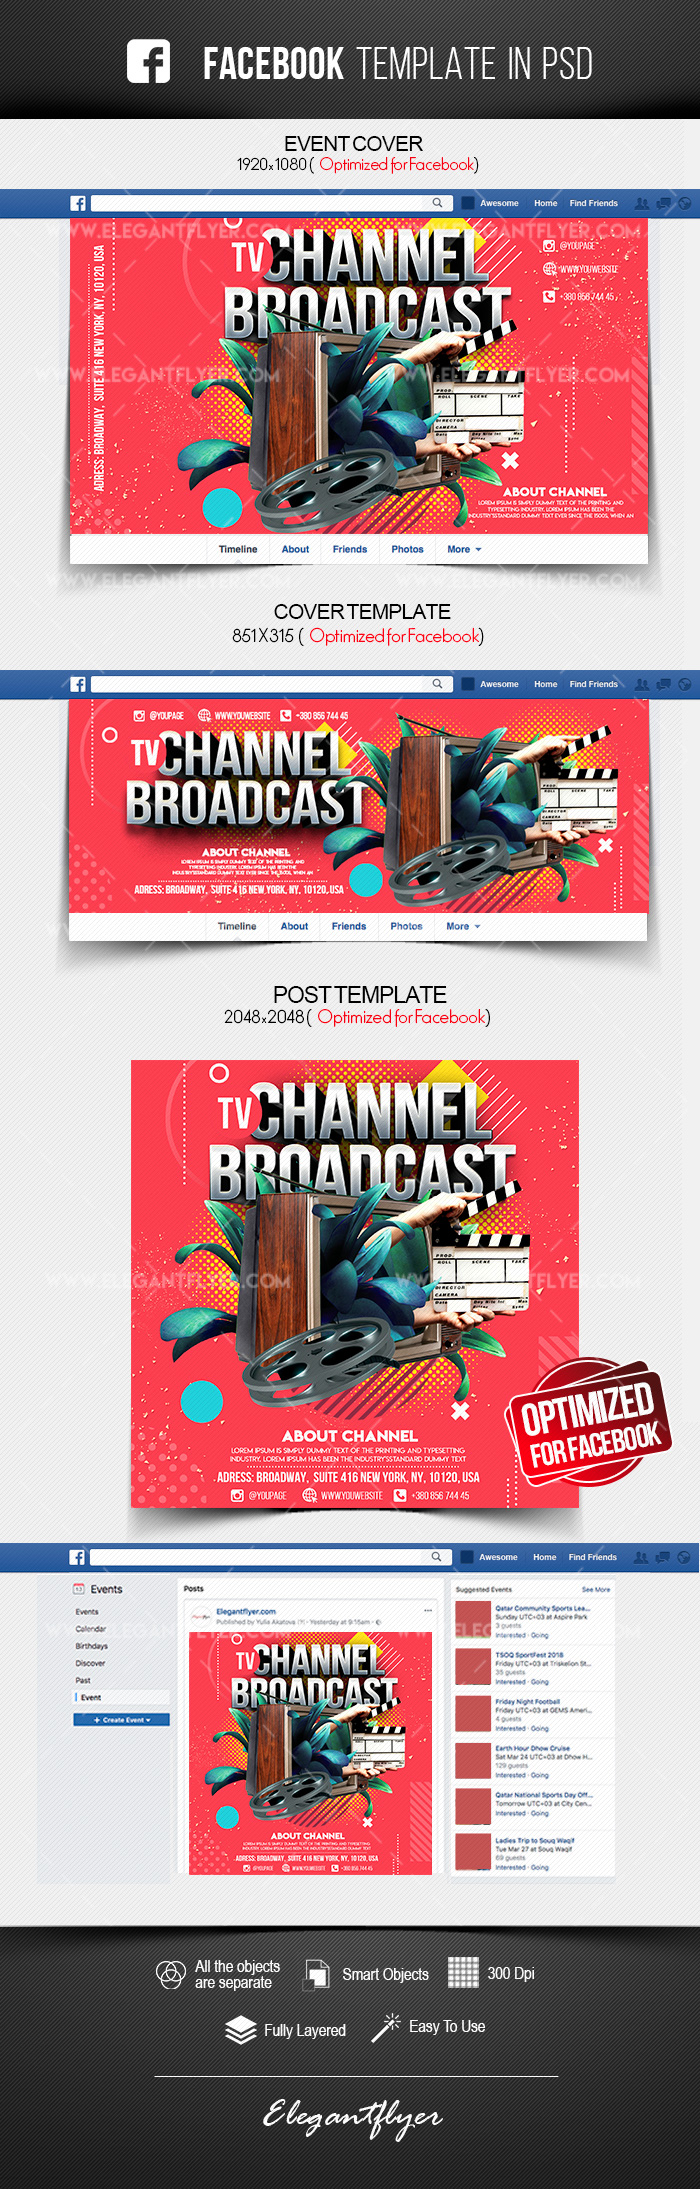 TV Channel Broadcast – Facebook Cover Template in PSD + Post + Event cover